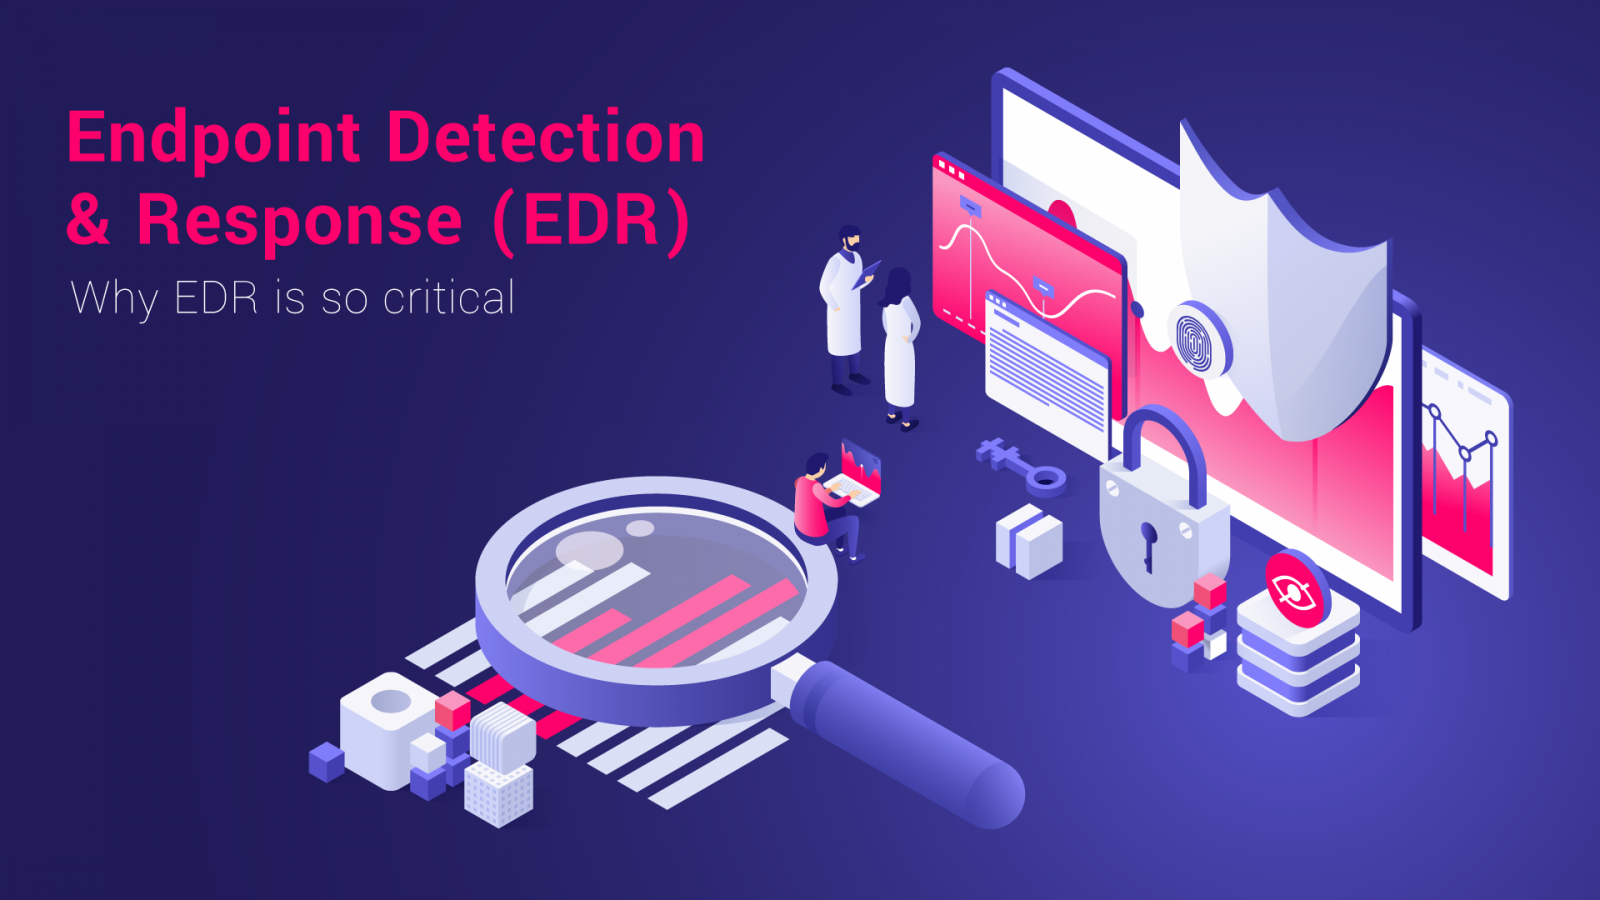 Endpoint Detection & Response (EDR)